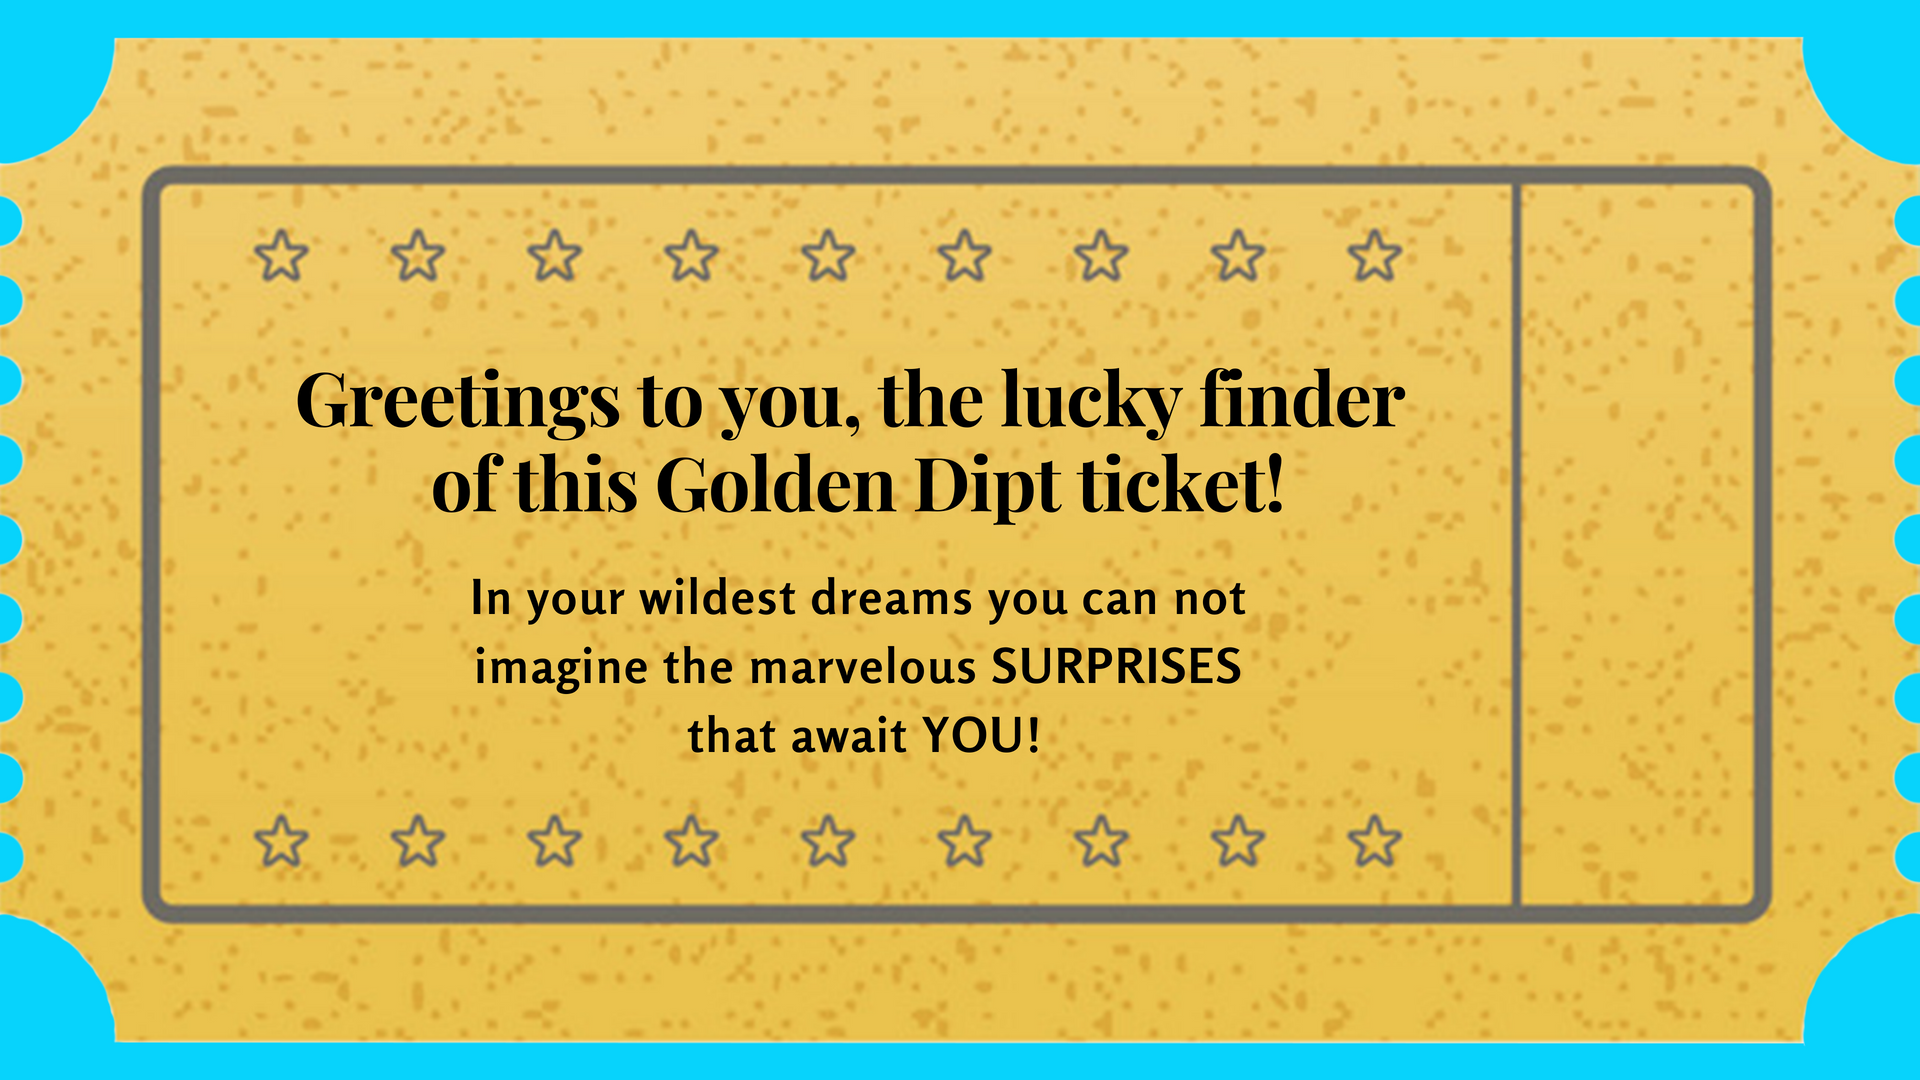 AutoFry Rebates: Finding the Golden Dipt Ticket!